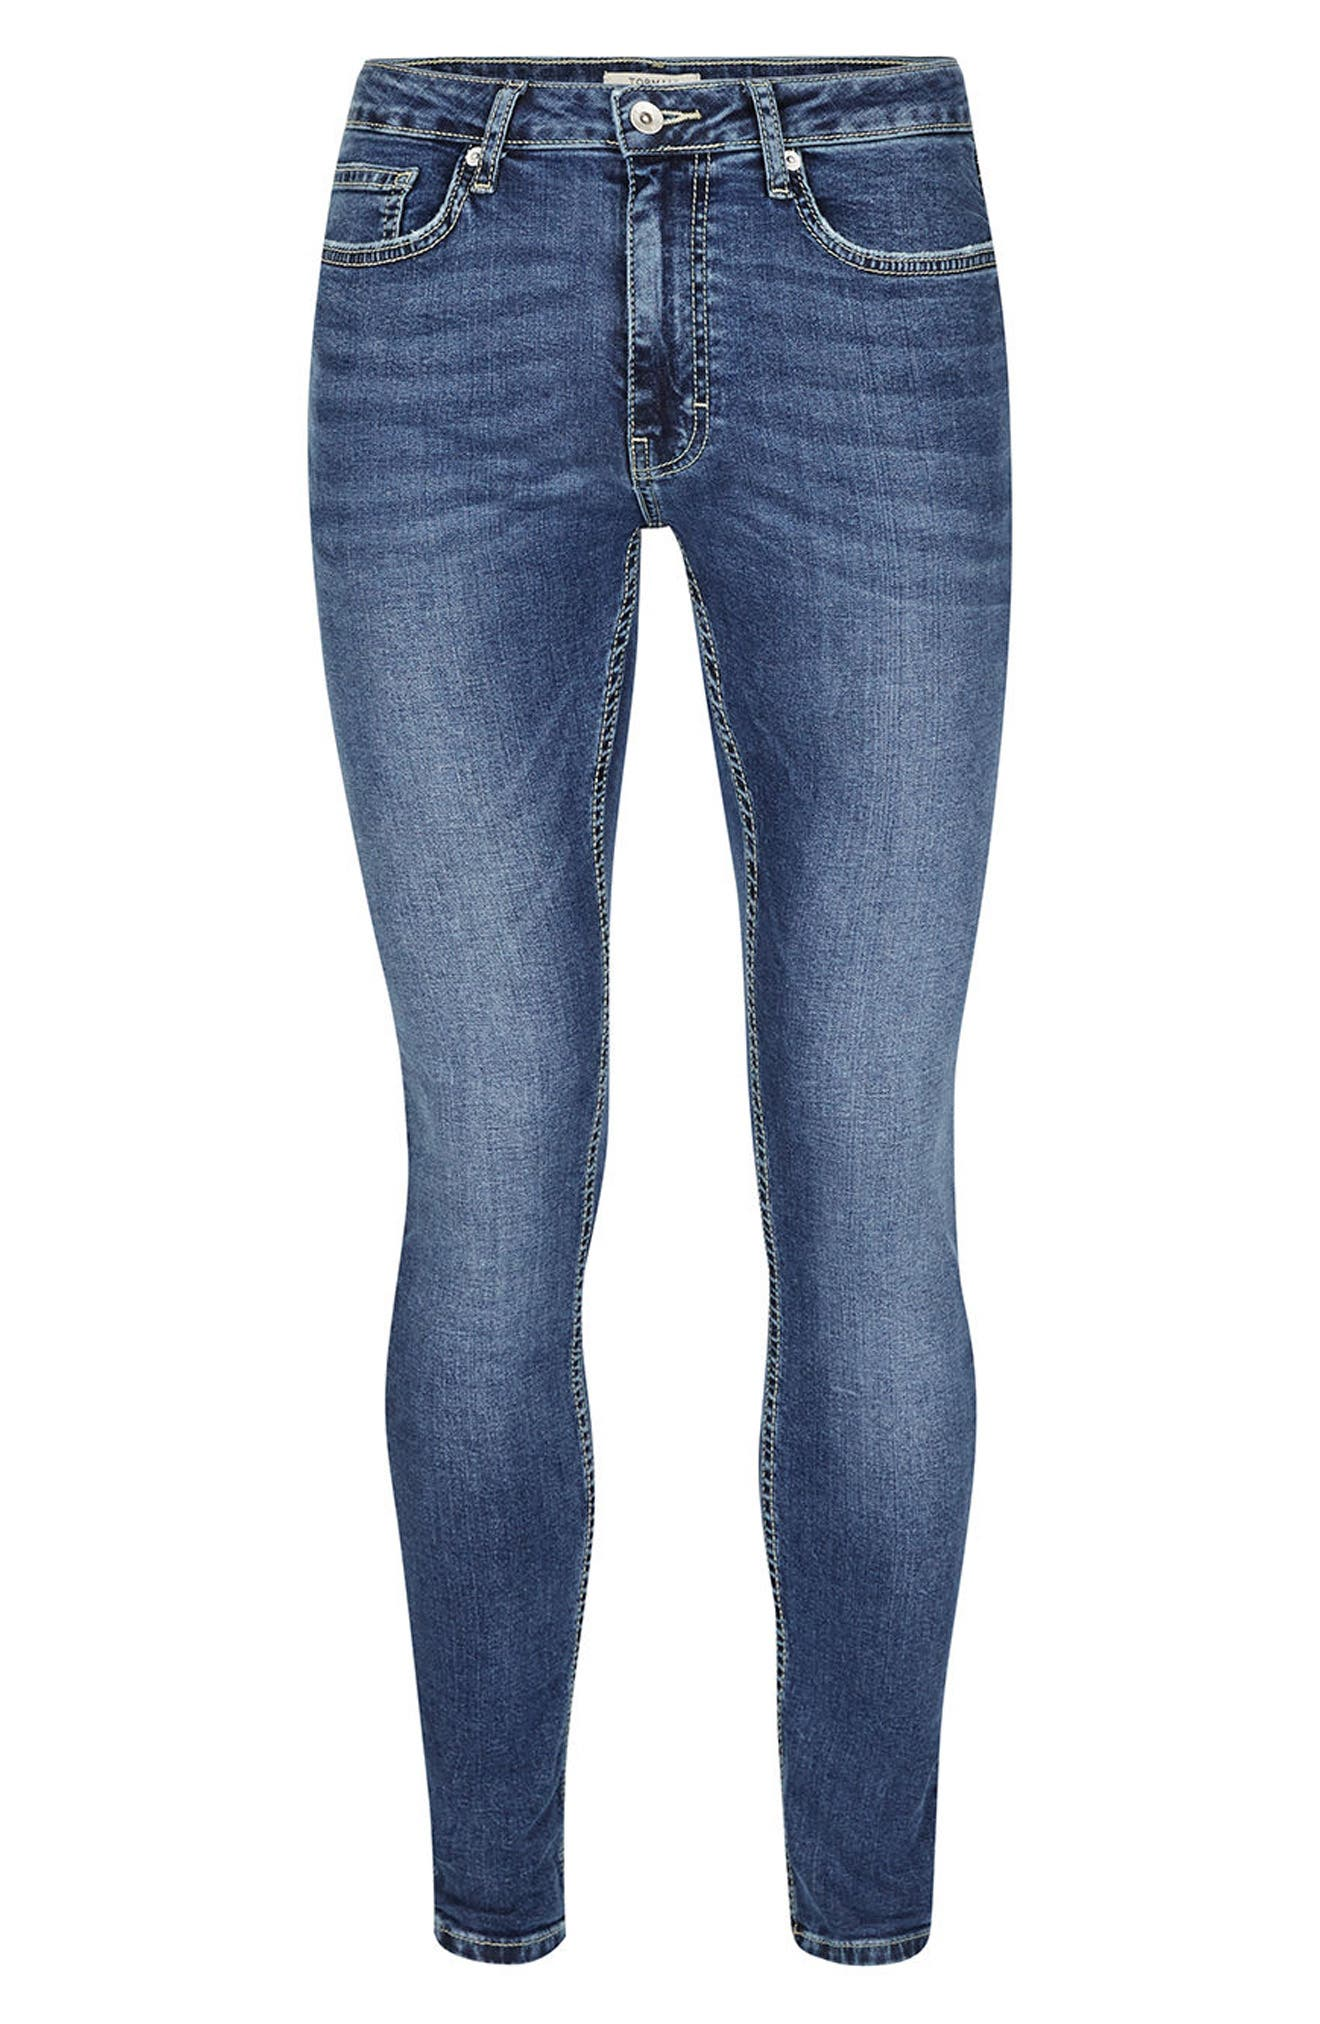 Spray-On Skinny Fit Jeans,                             Alternate thumbnail 6, color,                             Blue